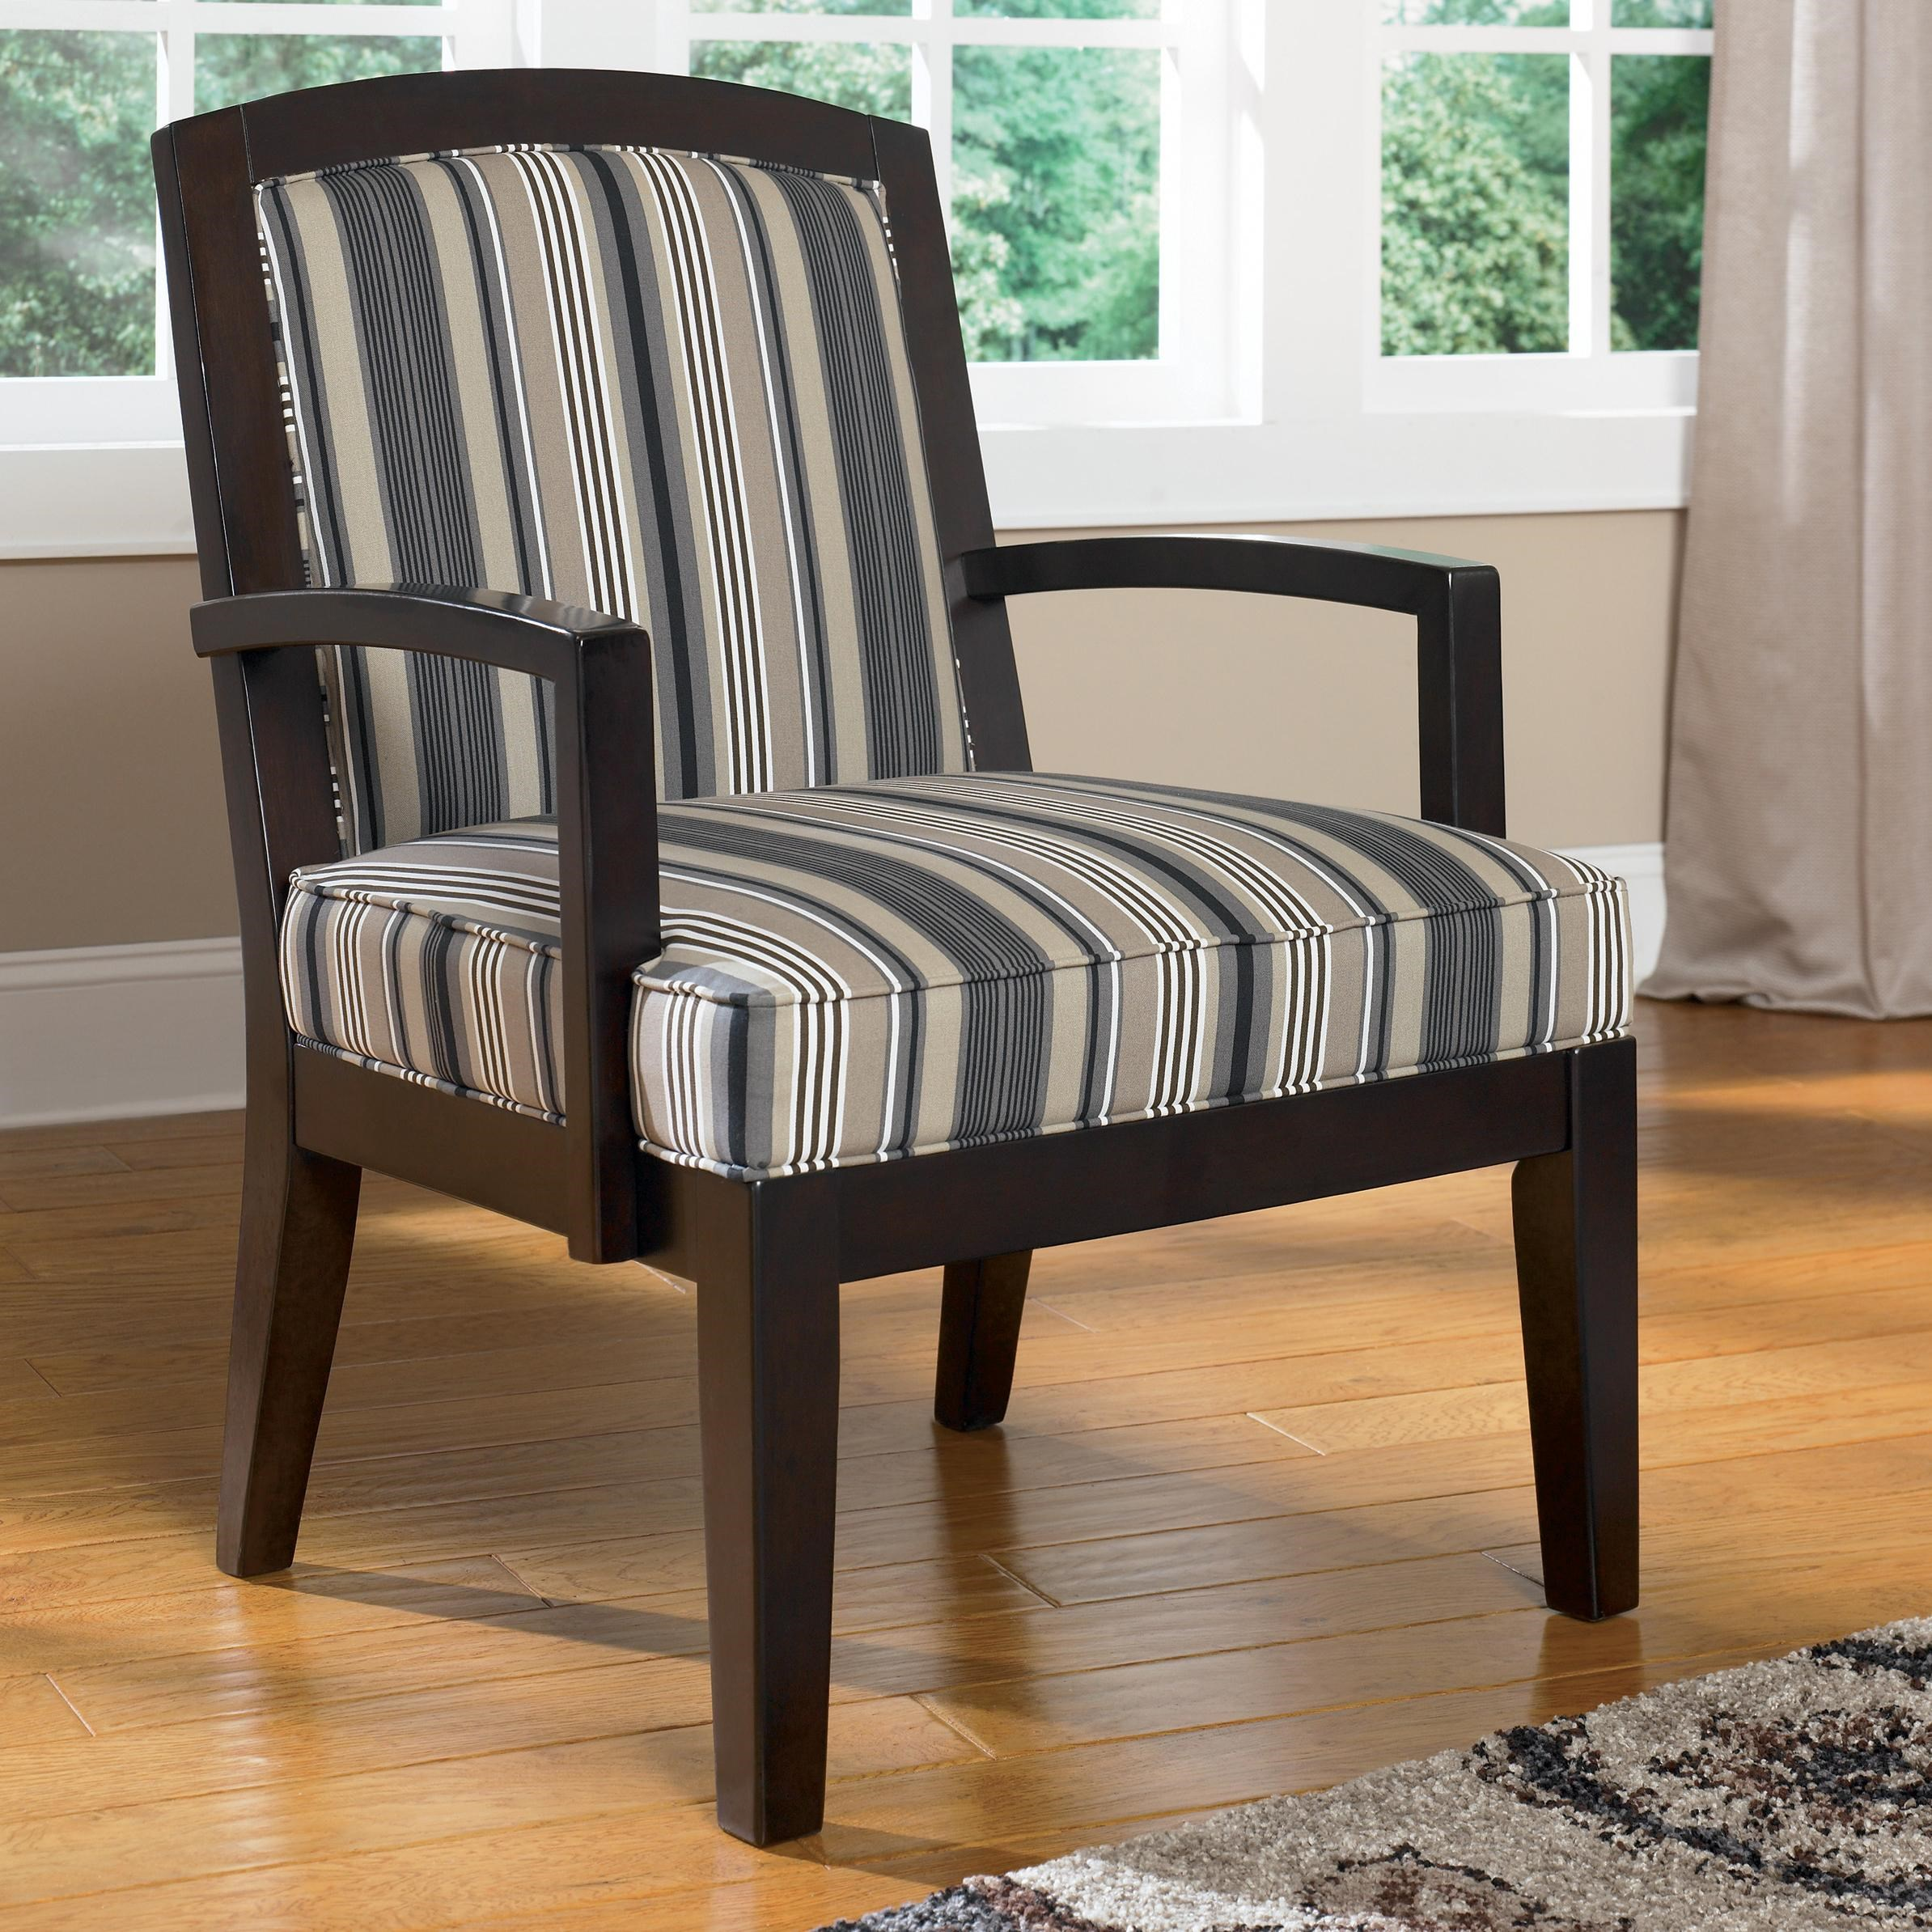 Ashley Furniture Yvette Steel Showood Accent Chair w